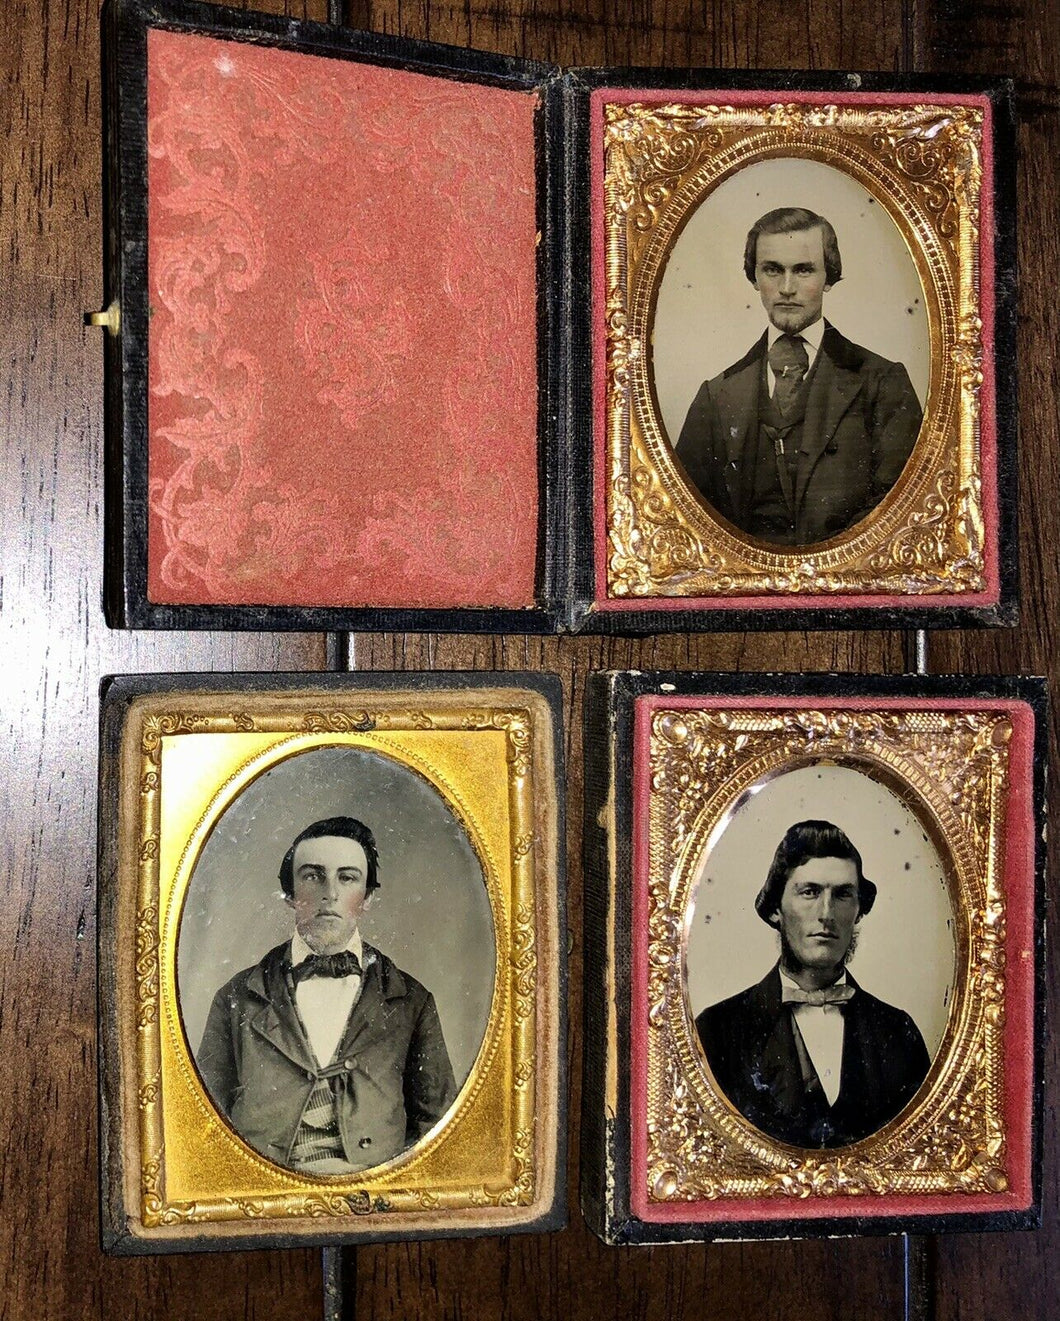 Three 1850s / 1860s Ambrotypes Of Men - One With Photographer Advertising Card